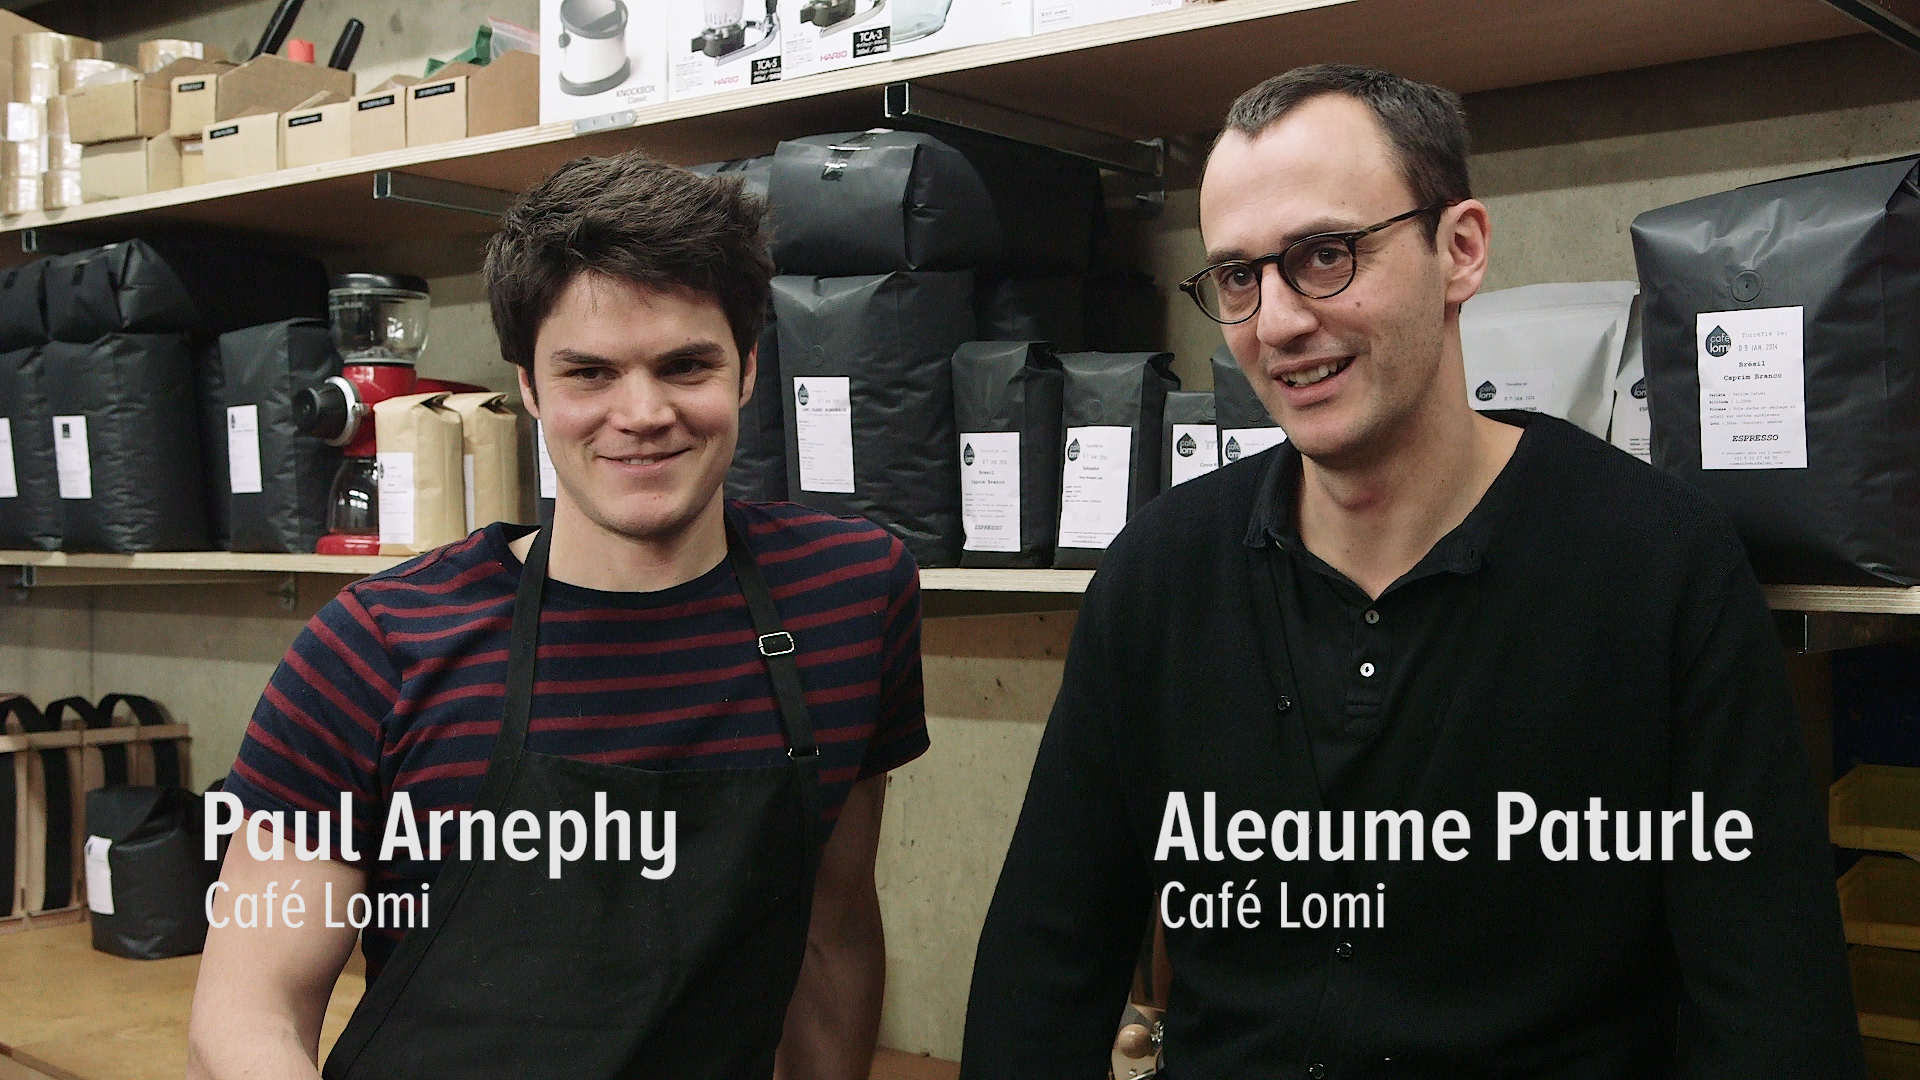 Paul Arnephy and Aleaume Paturle.jpg